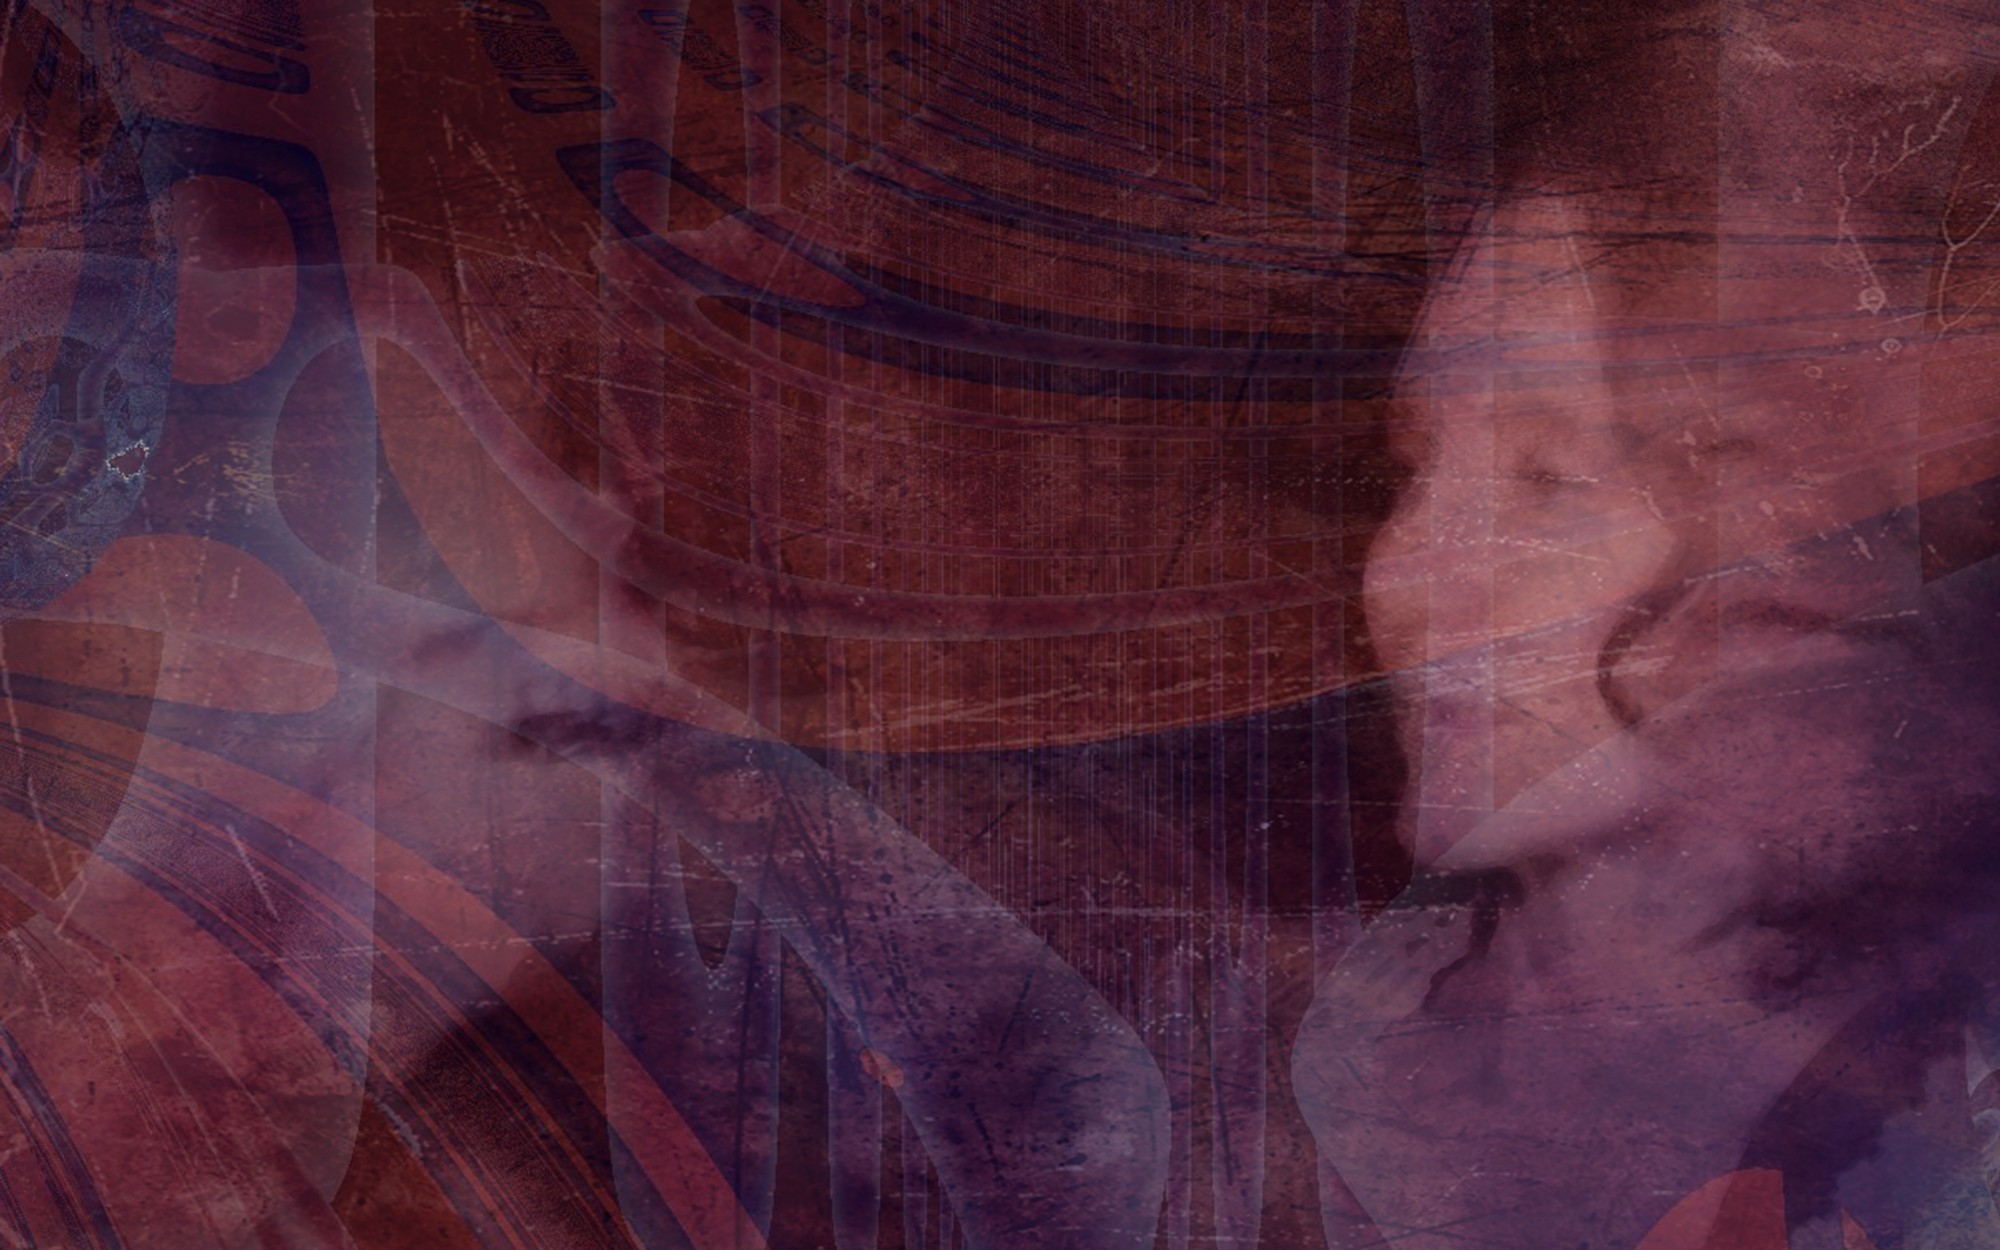 Composite image in red and purple tones, with texture, fractal patterning, and a woman's profile.